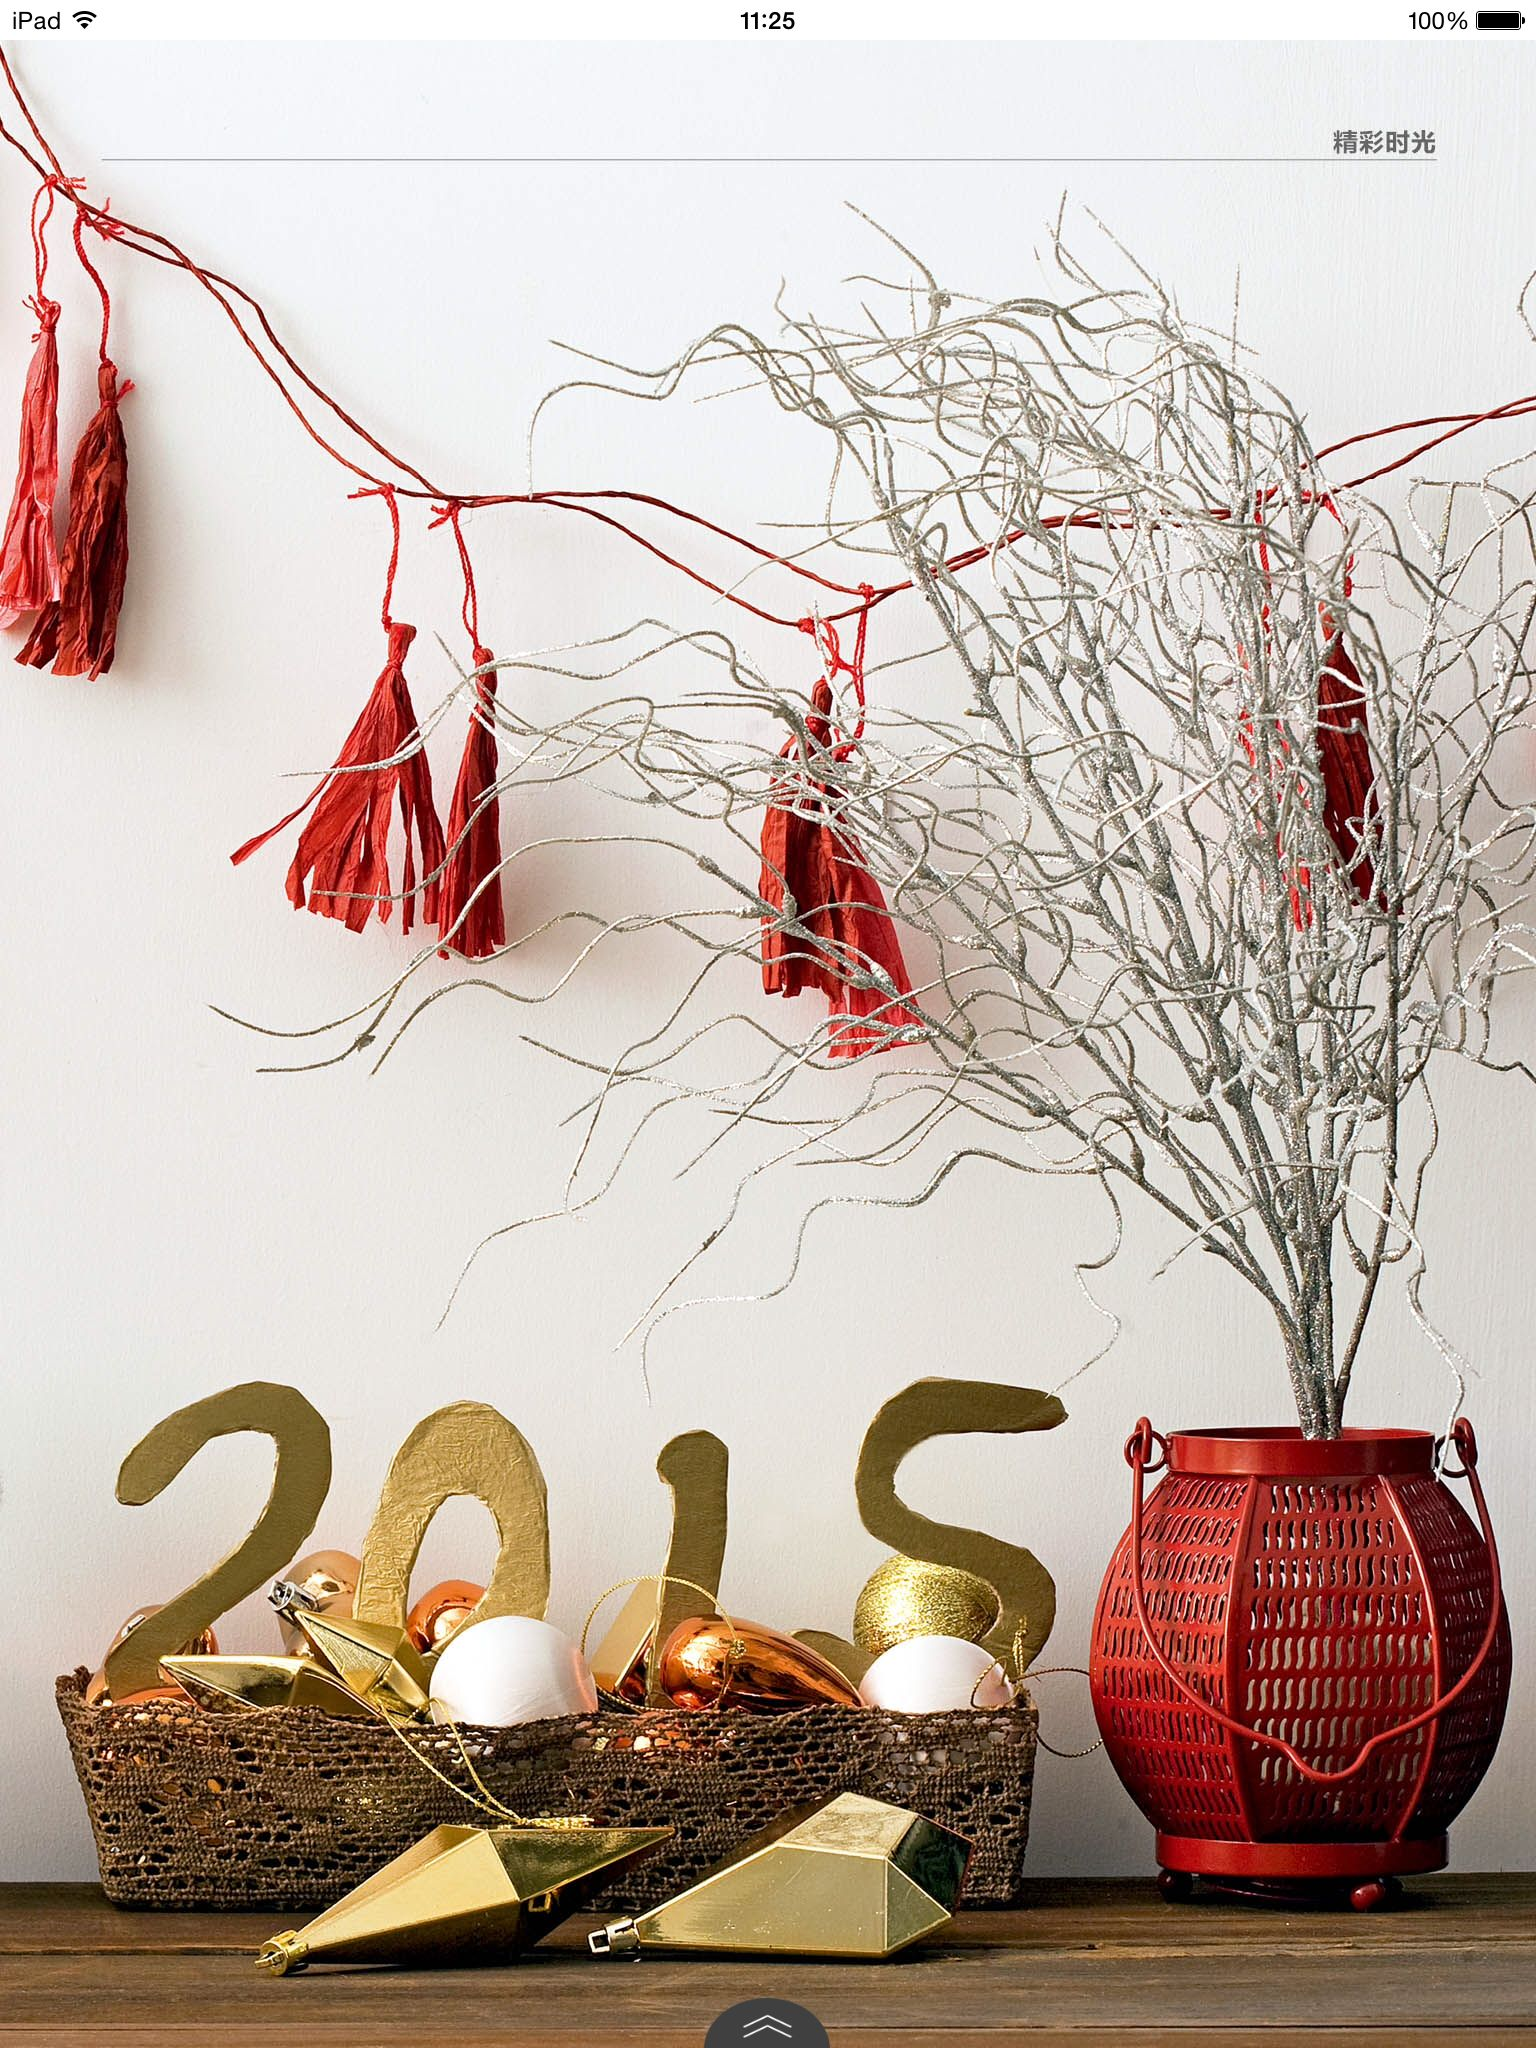 Chinese new year decor | Chinese New Year | Pinterest ...